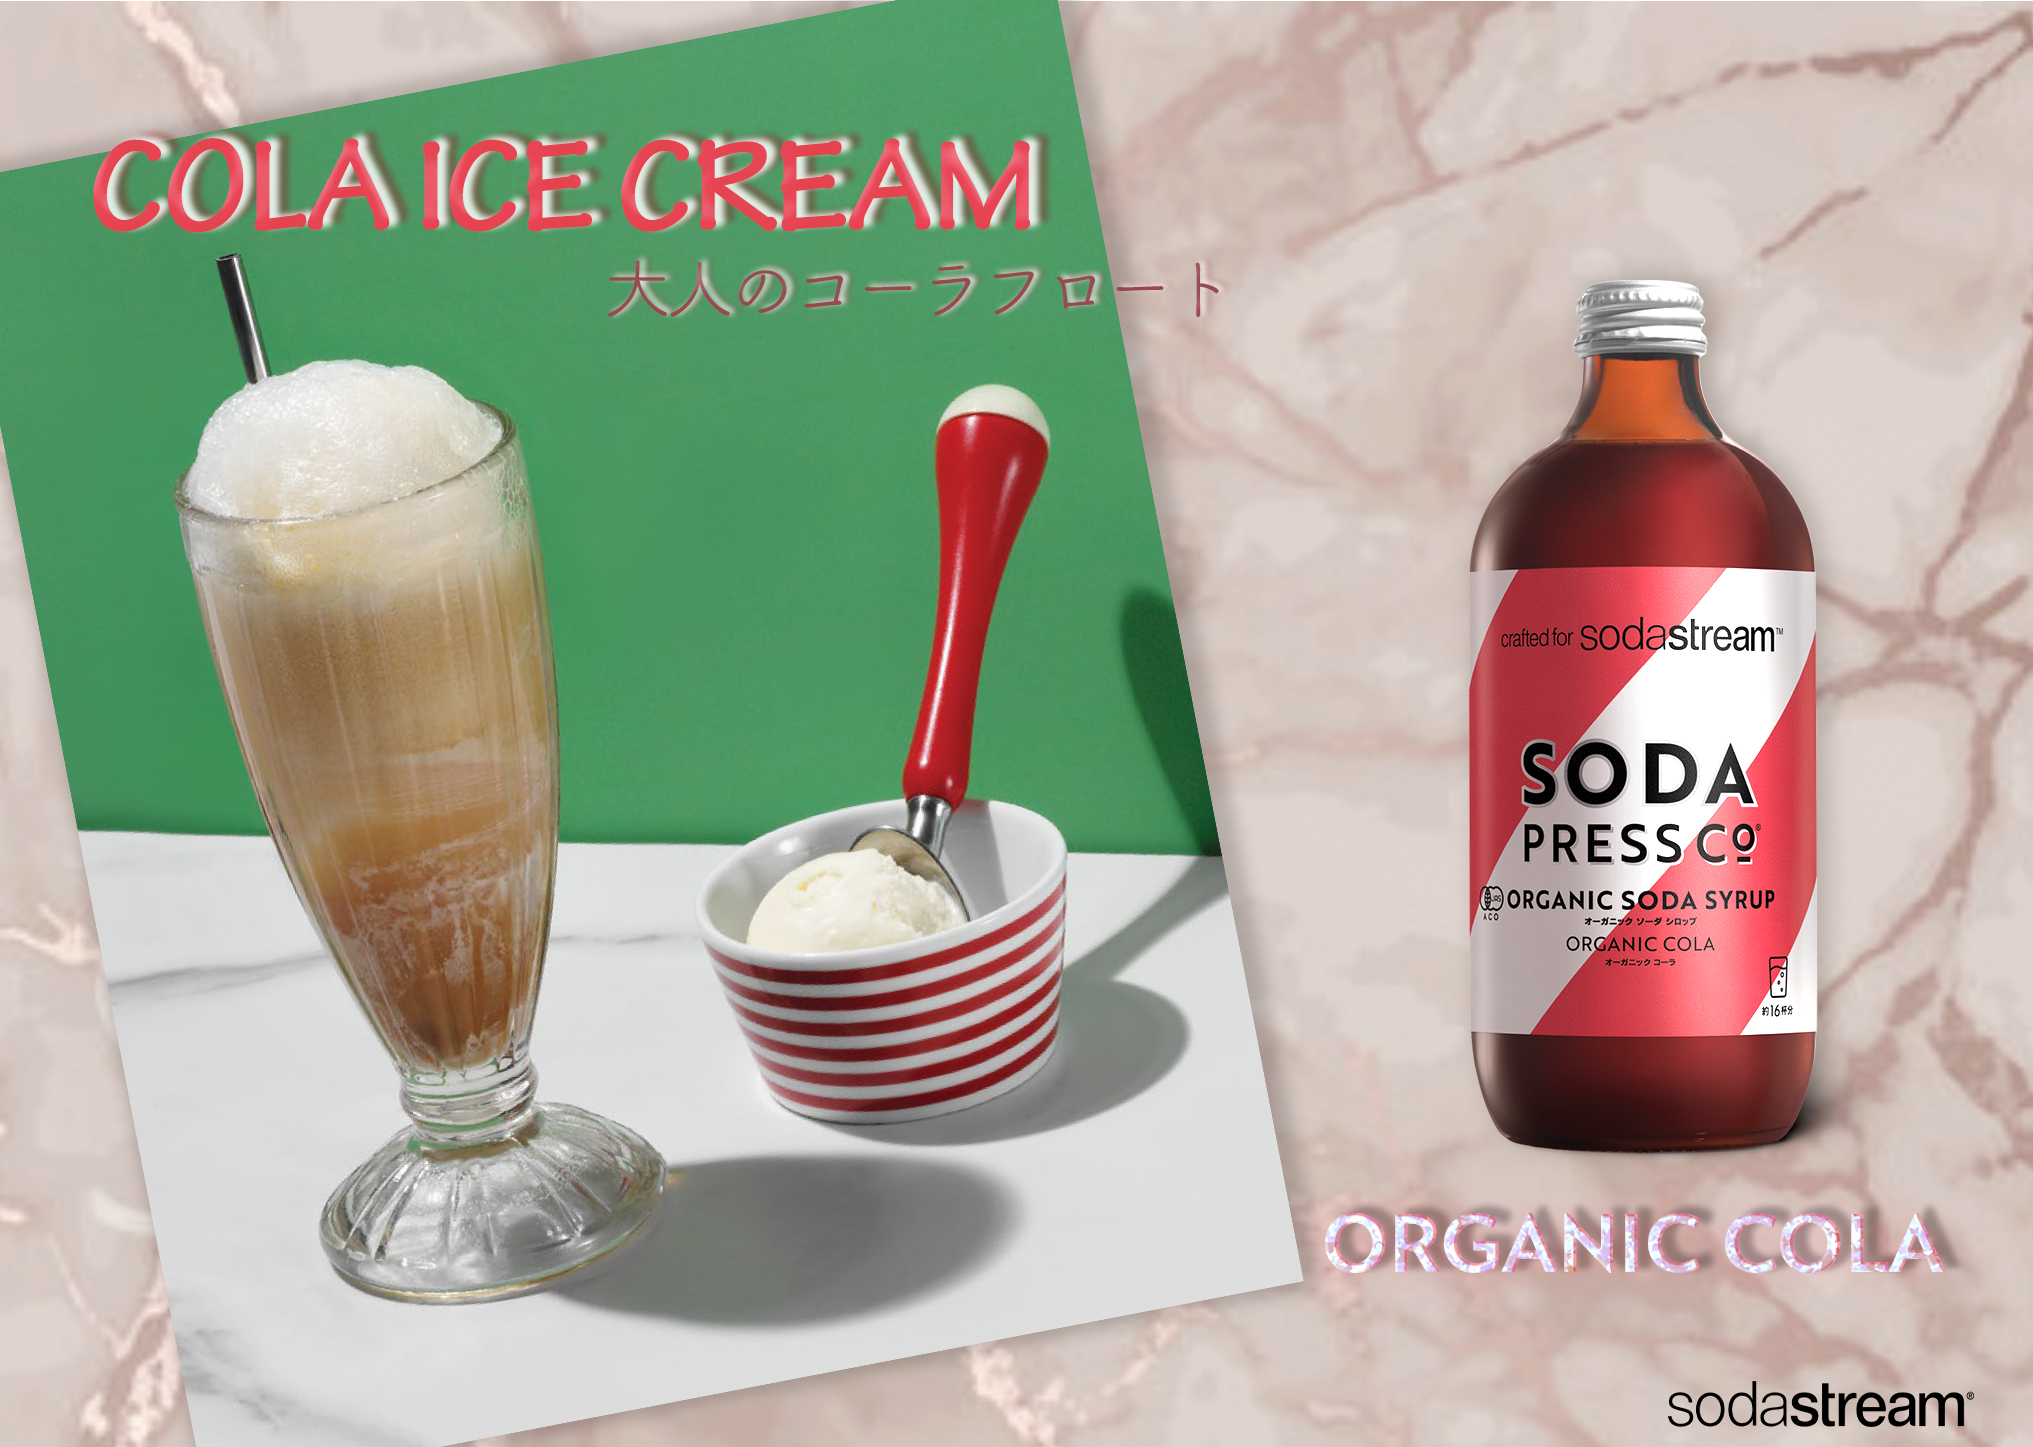 COLA ICE CREAM